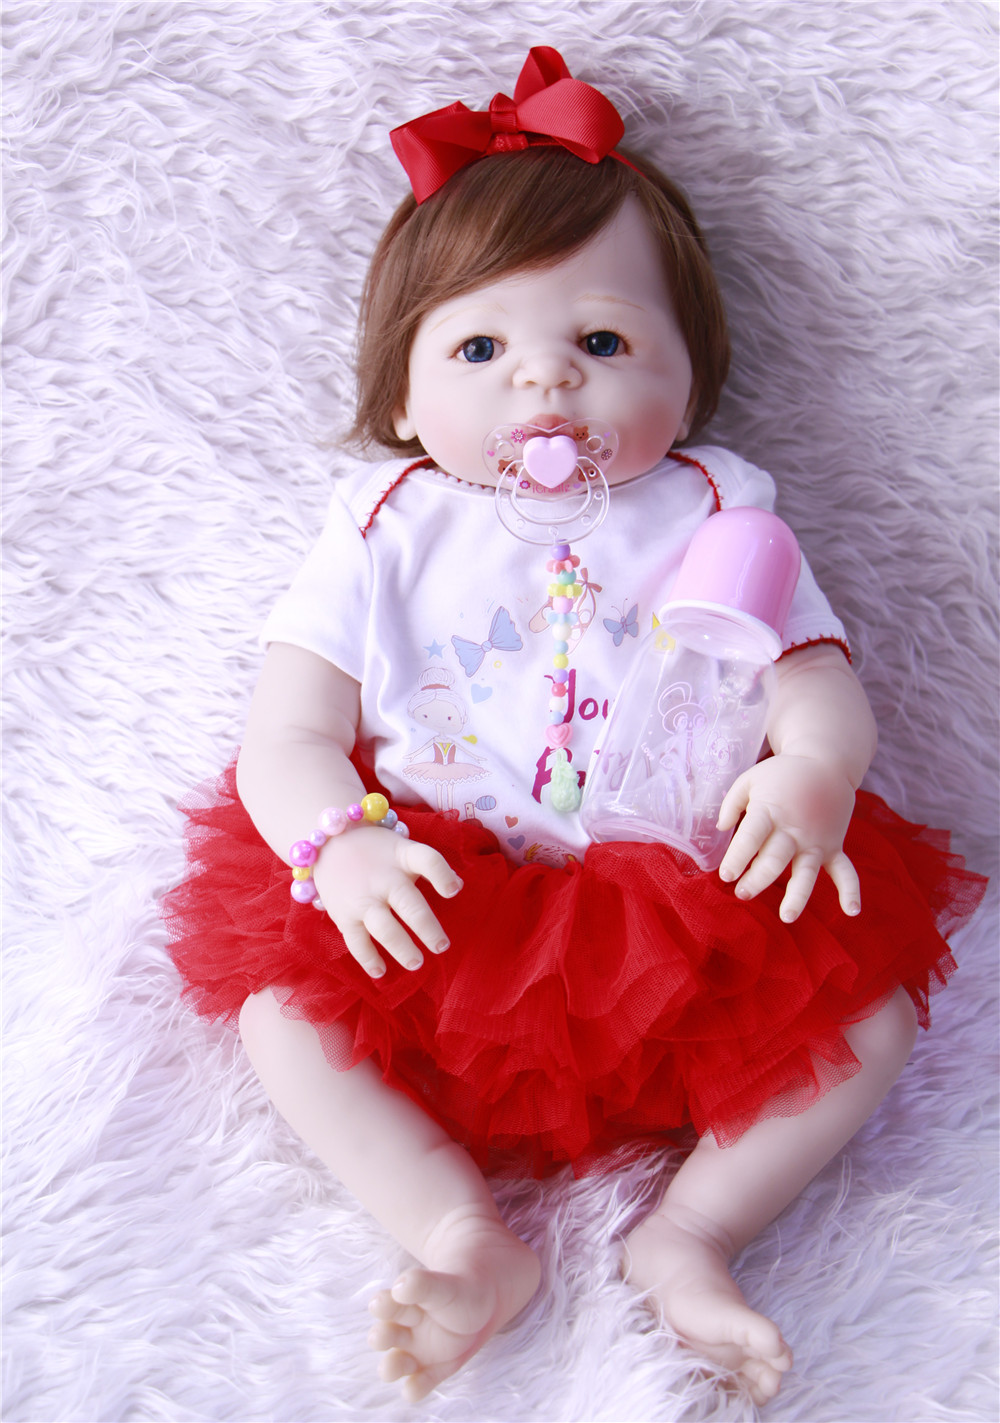 Doll Baby 55CM 22inch Doll Bebe Reborn Dolls Girl Lifelike full Silicone Reborn Doll Fashion Boy Newborn Reborn Babies dollmaiDoll Baby 55CM 22inch Doll Bebe Reborn Dolls Girl Lifelike full Silicone Reborn Doll Fashion Boy Newborn Reborn Babies dollmai